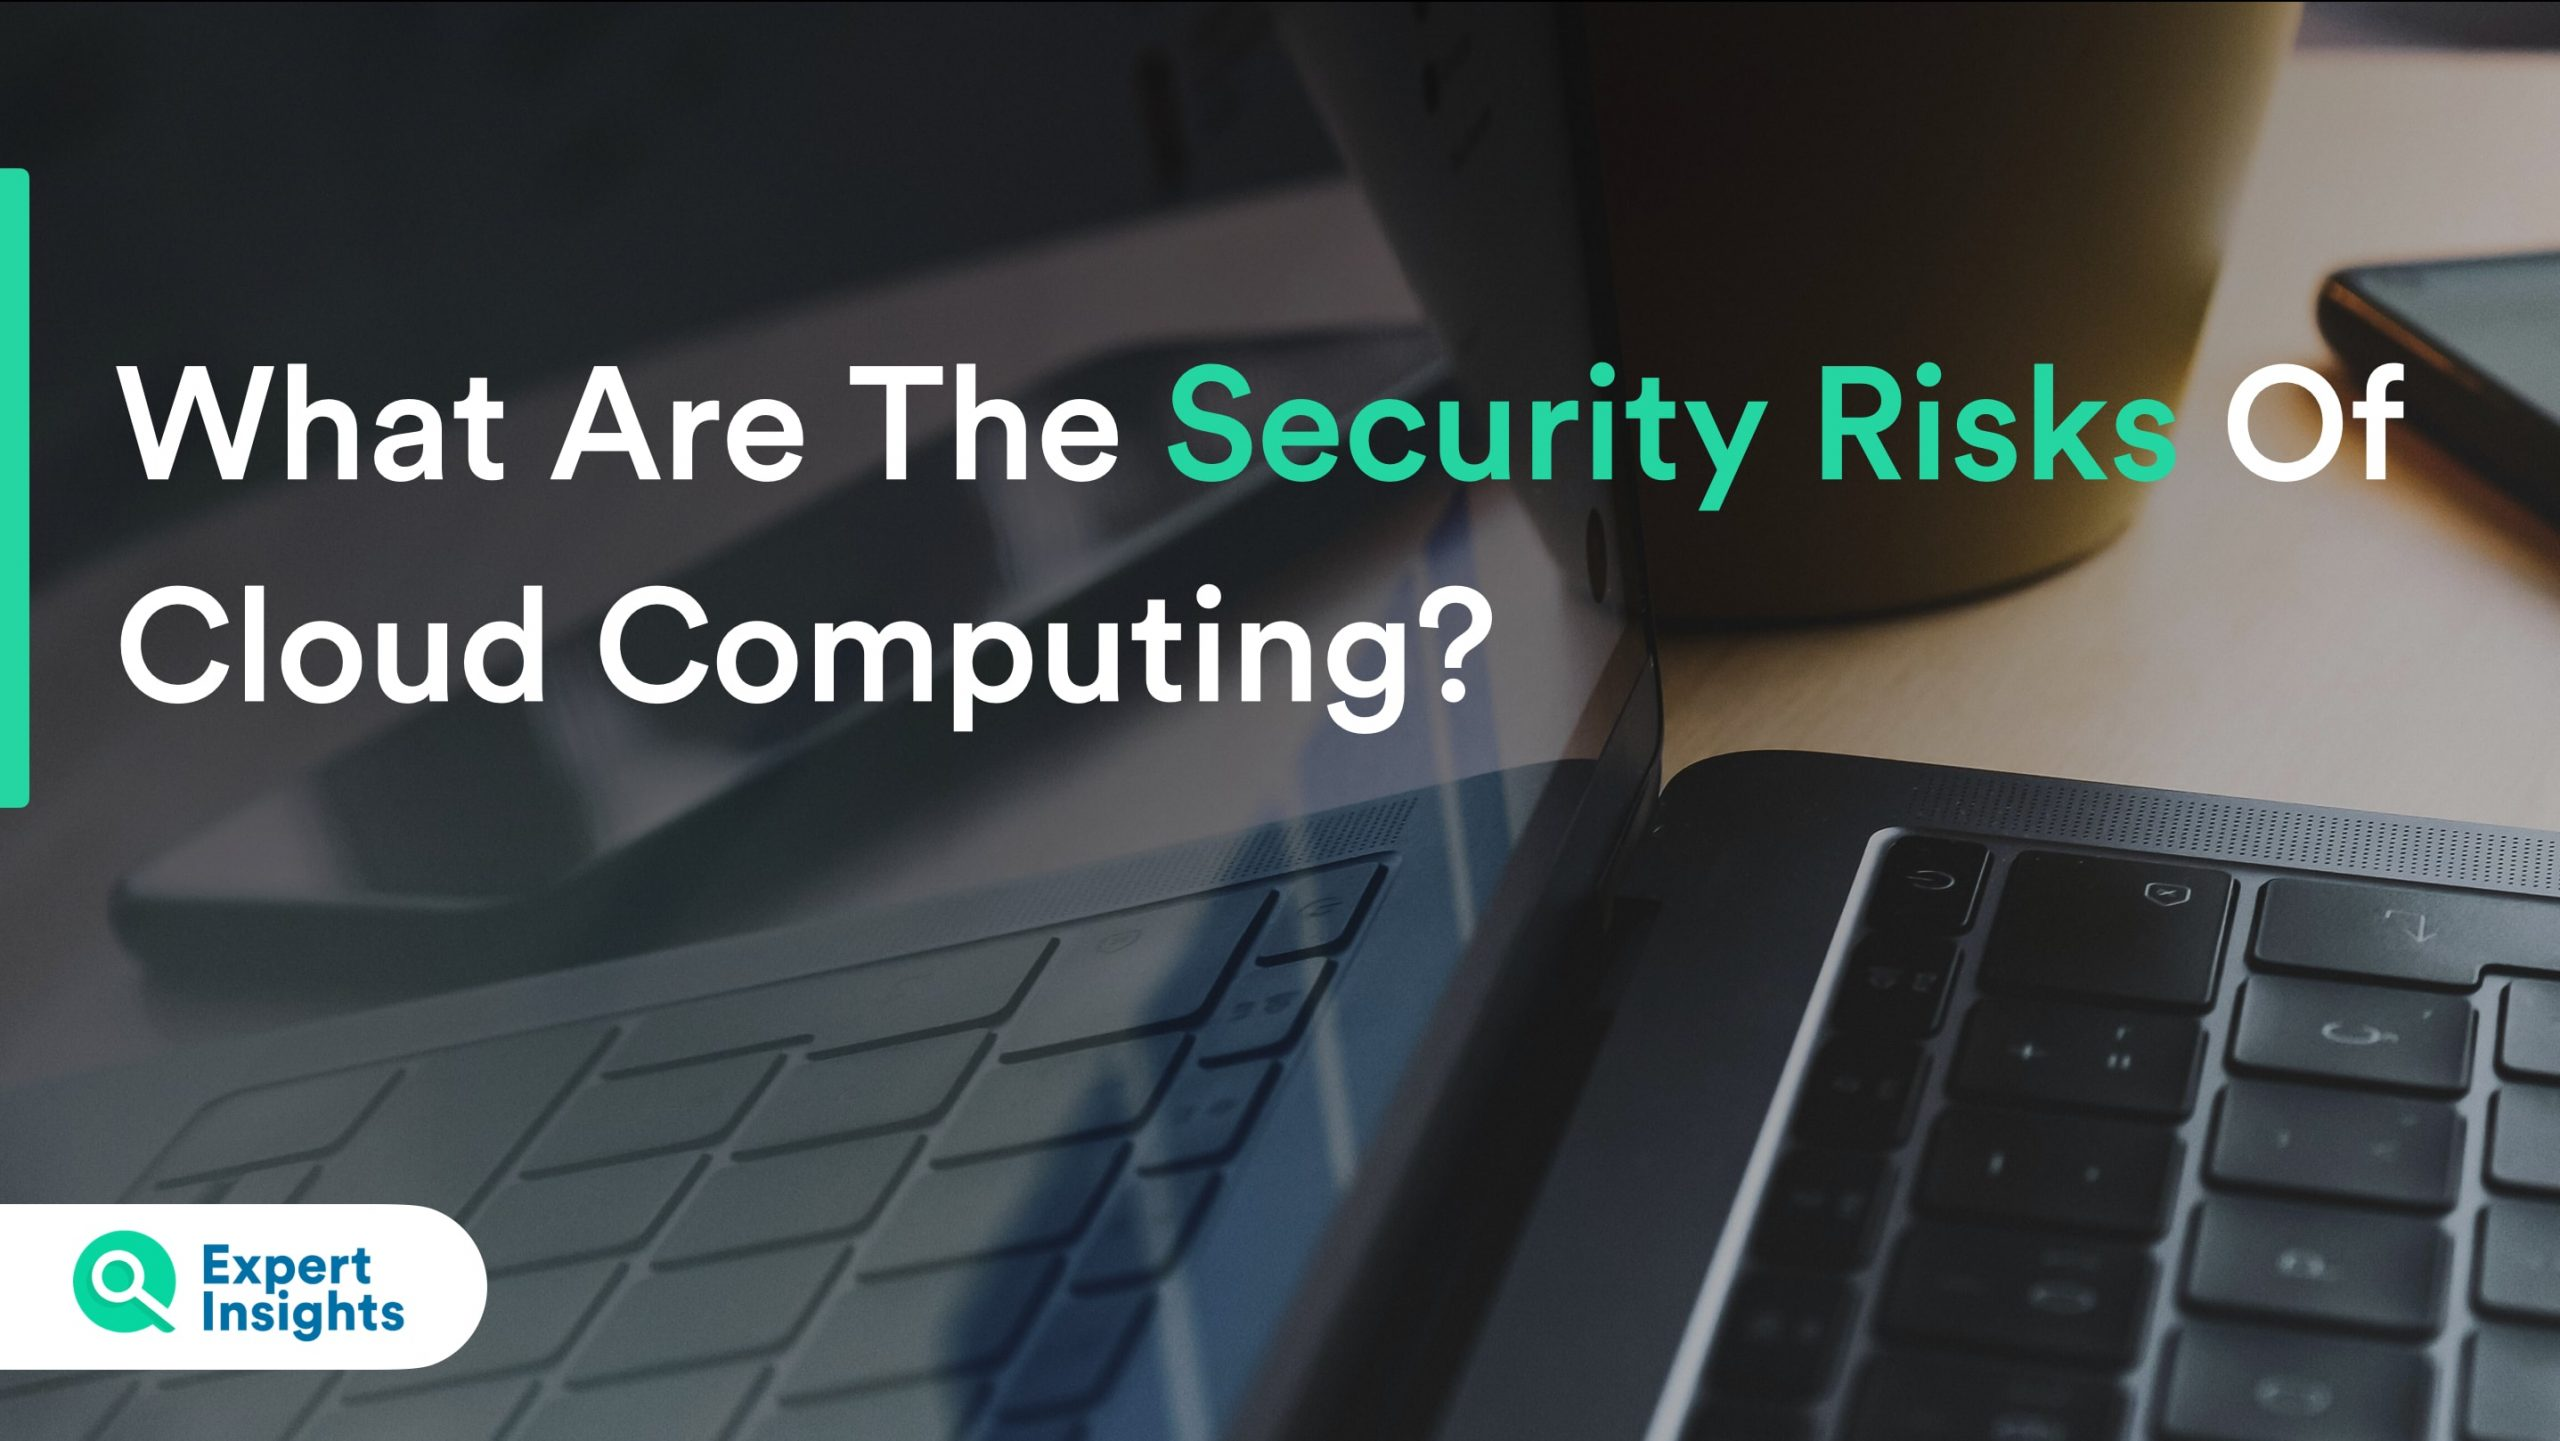 What Are The Security Risks Of Cloud Computing?